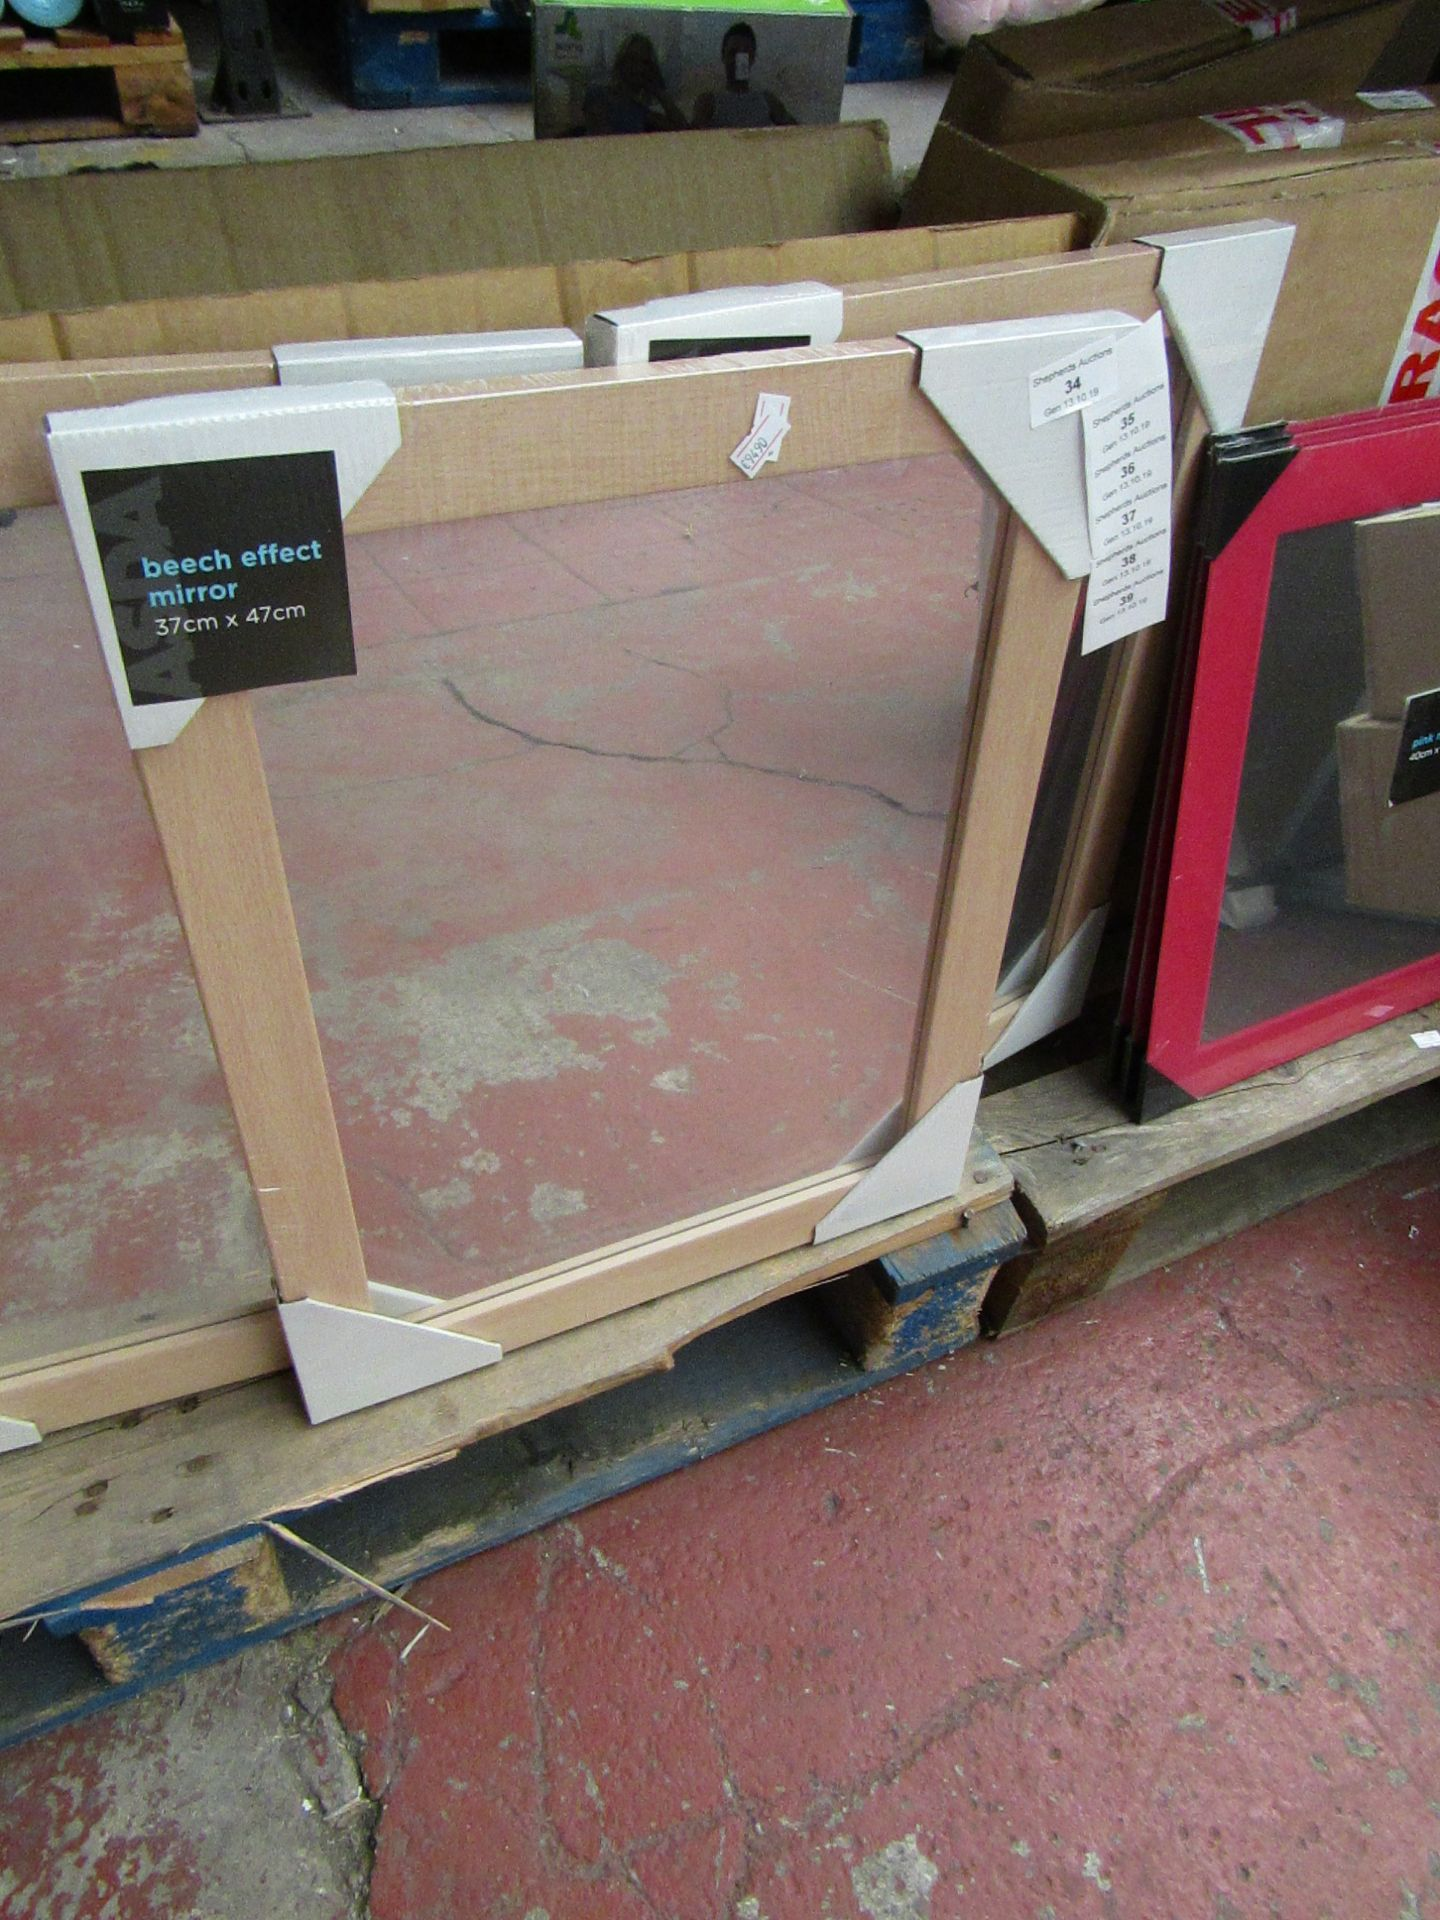 Lot 34 - Beech effect mirror, 37 x 47cm, new and packaged.